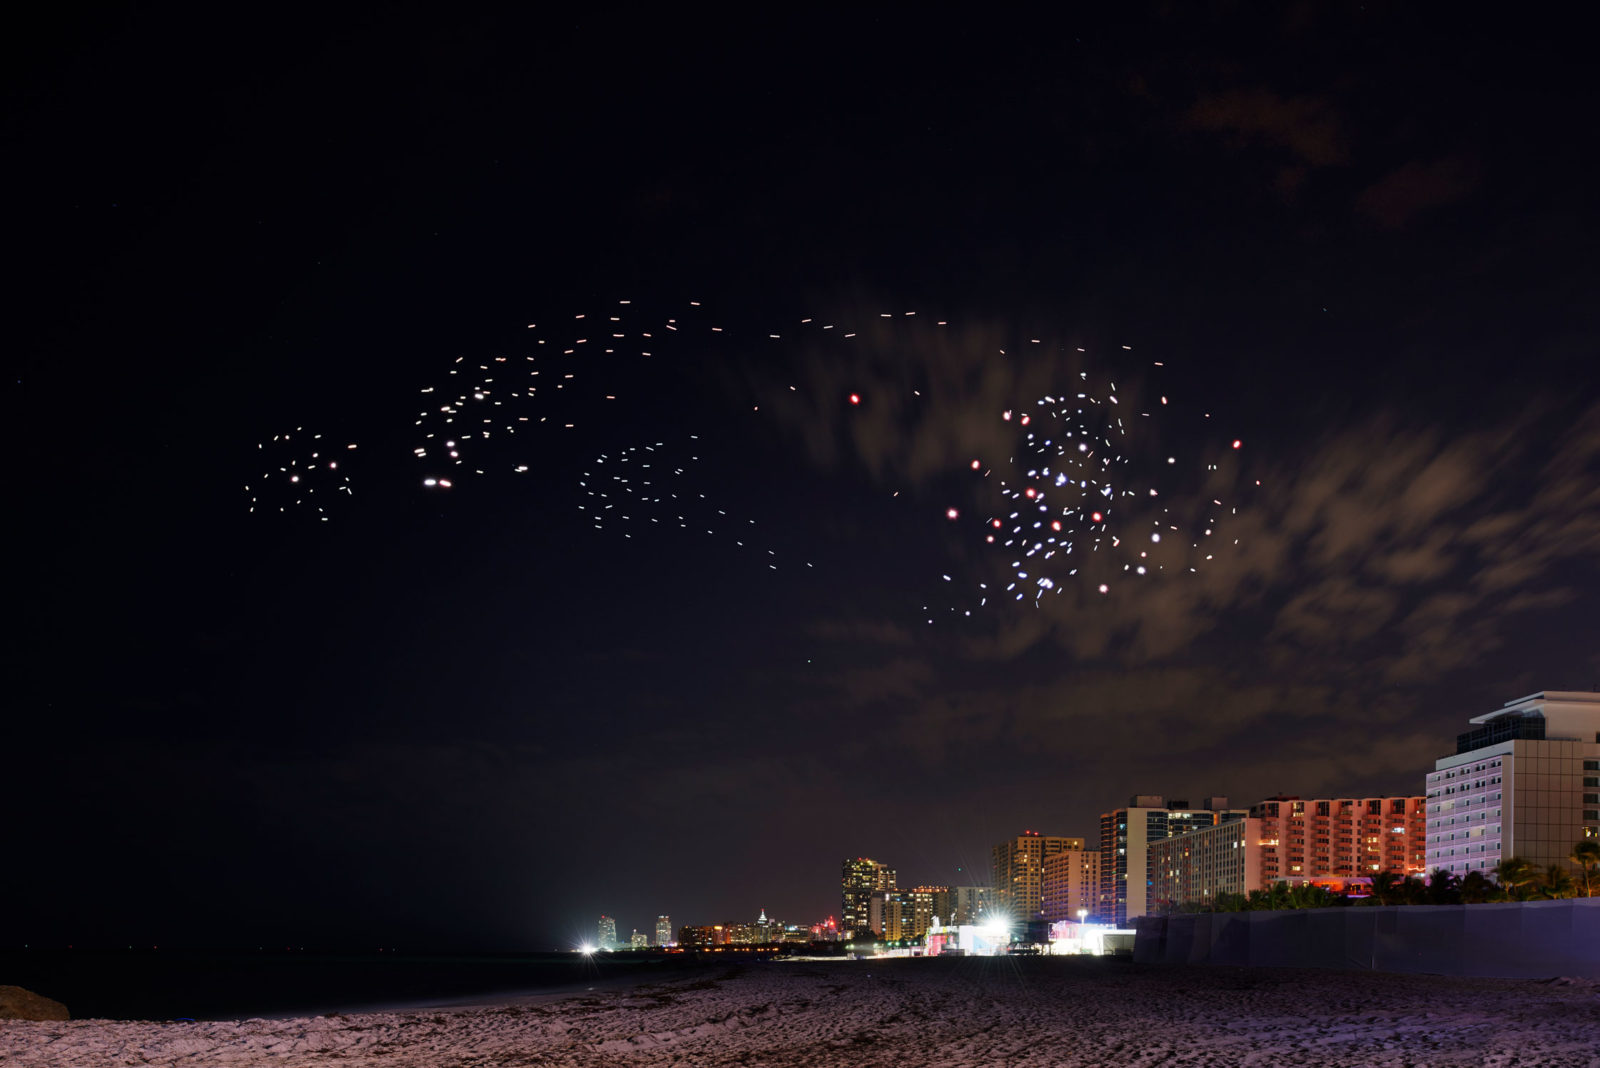 (EN) Franchise Freedom – A swarm of 300 autonomous drones roams free over Miami Beach © BMW Group